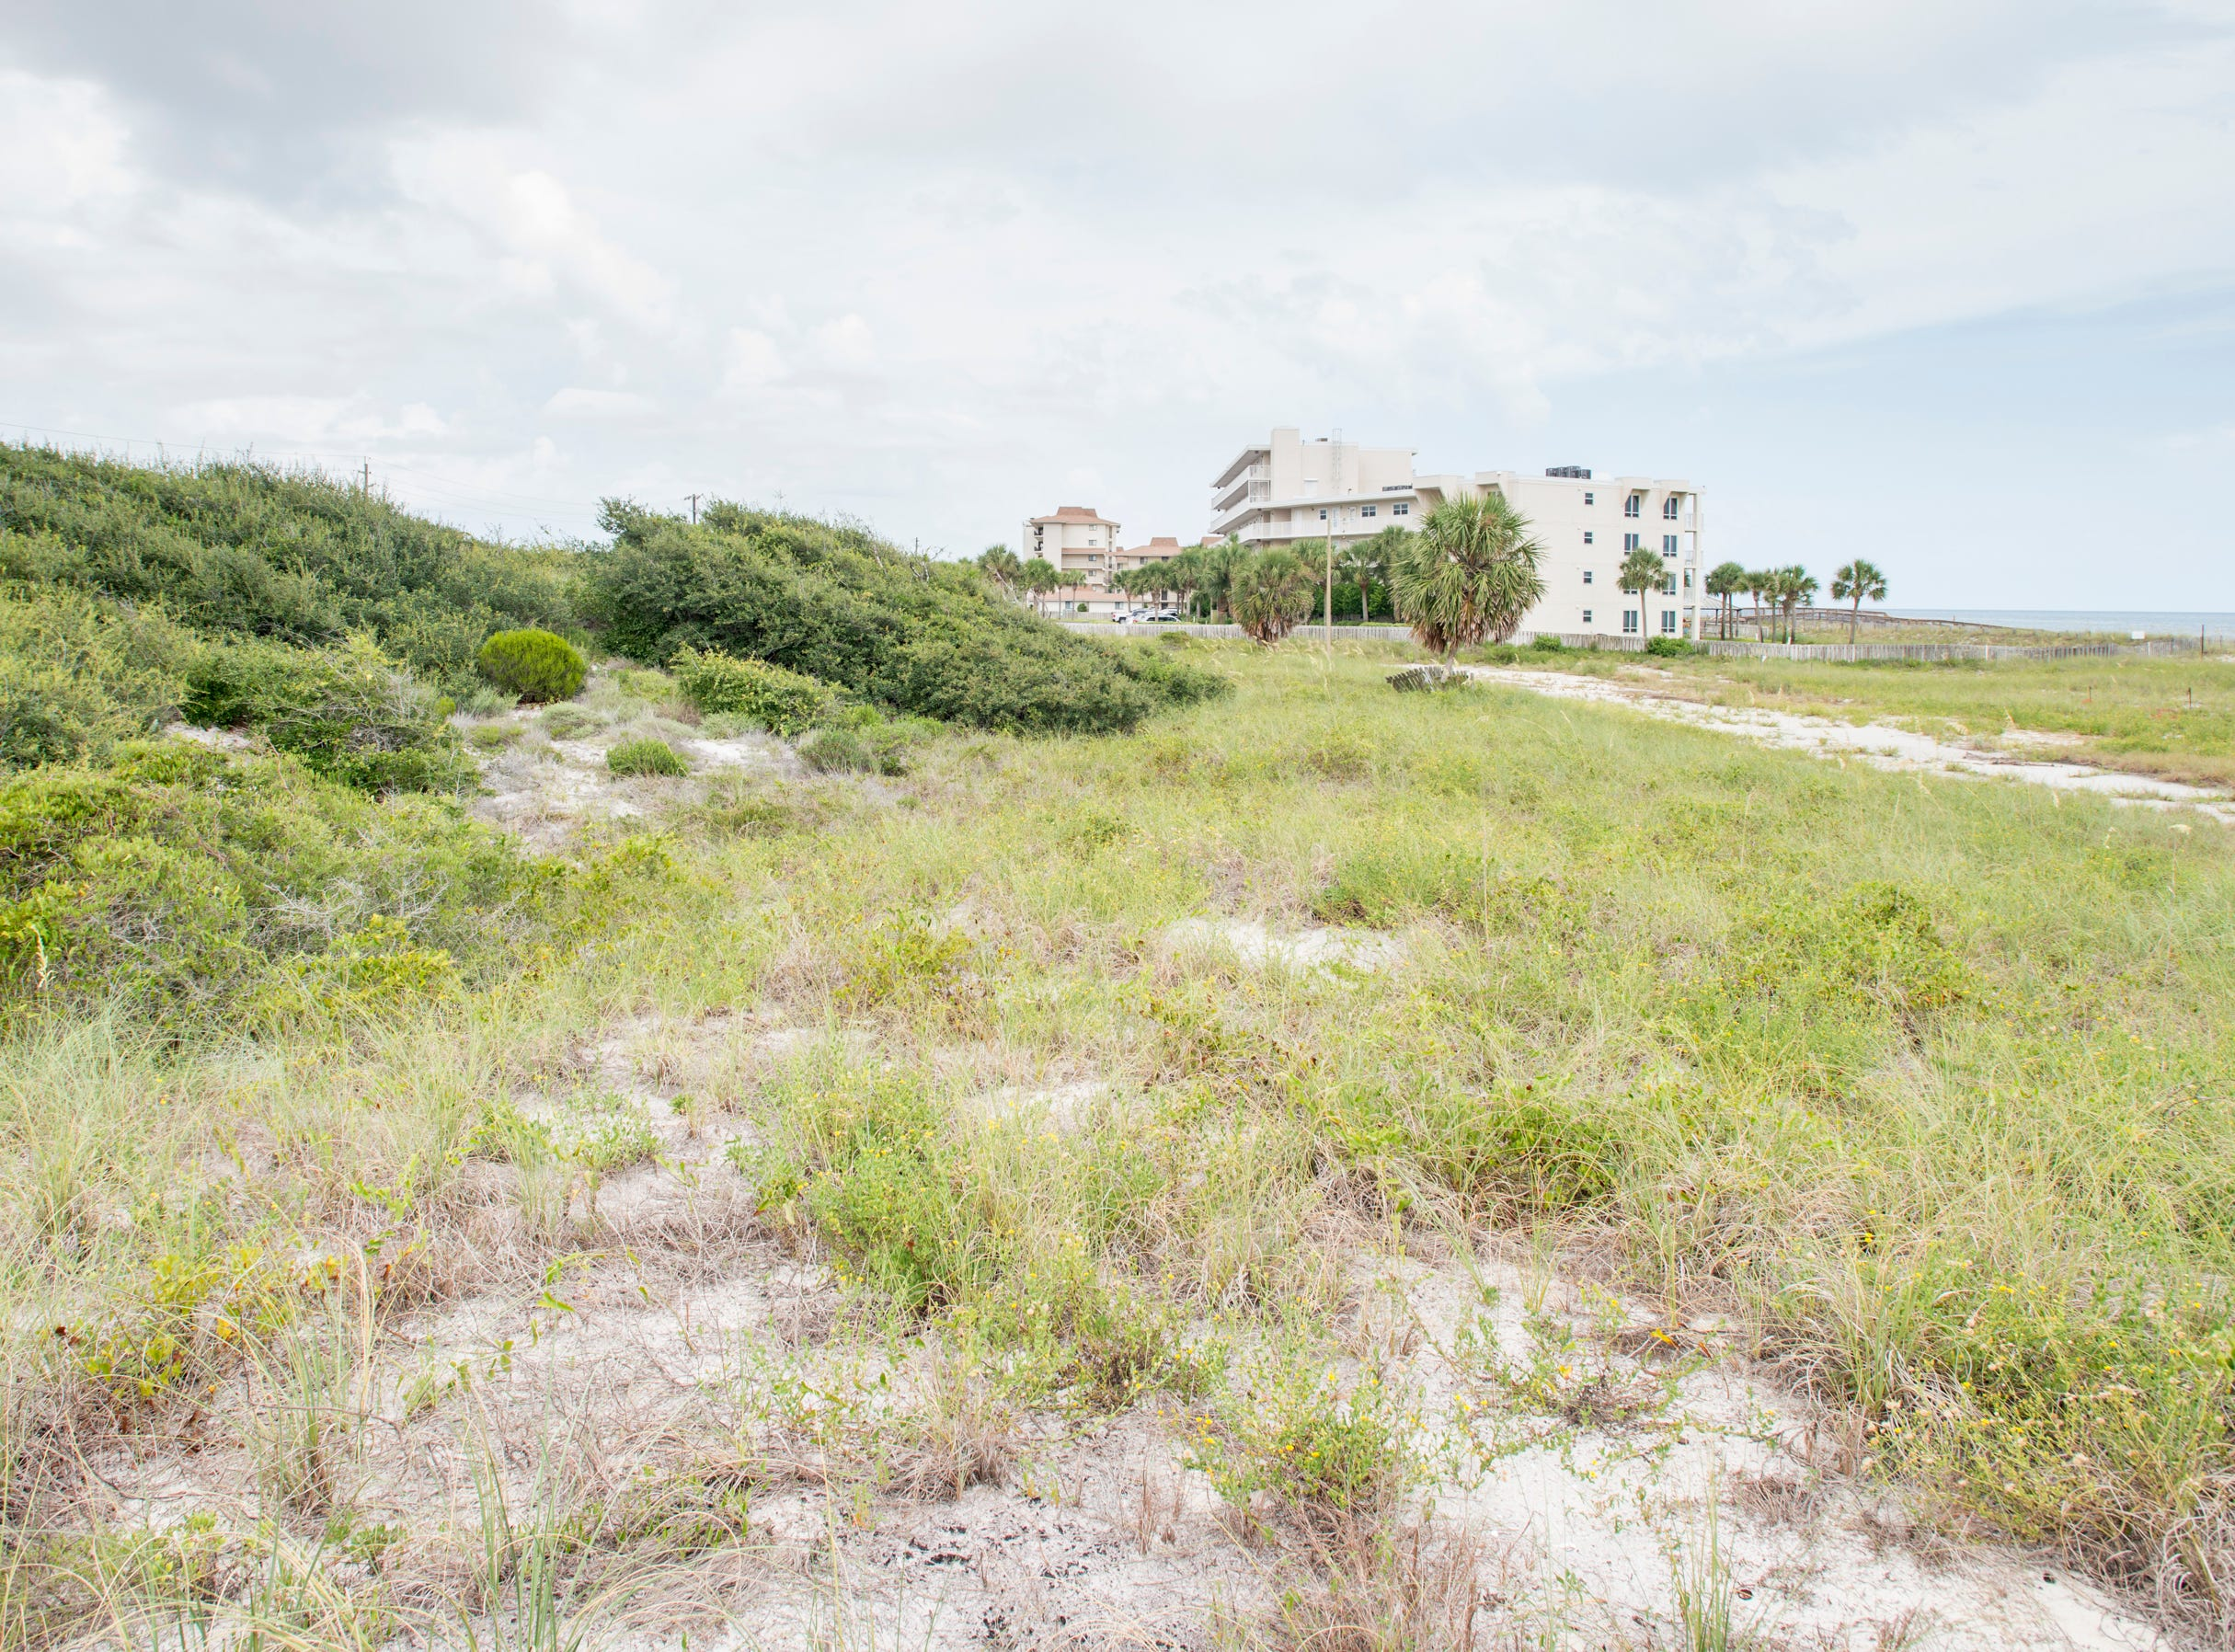 Beachfront property owned by Escambia County in Perdido Key on Tuesday, July 31, 2018.  The county owned property currently sits vacant with no public parking and no public access to the beach.